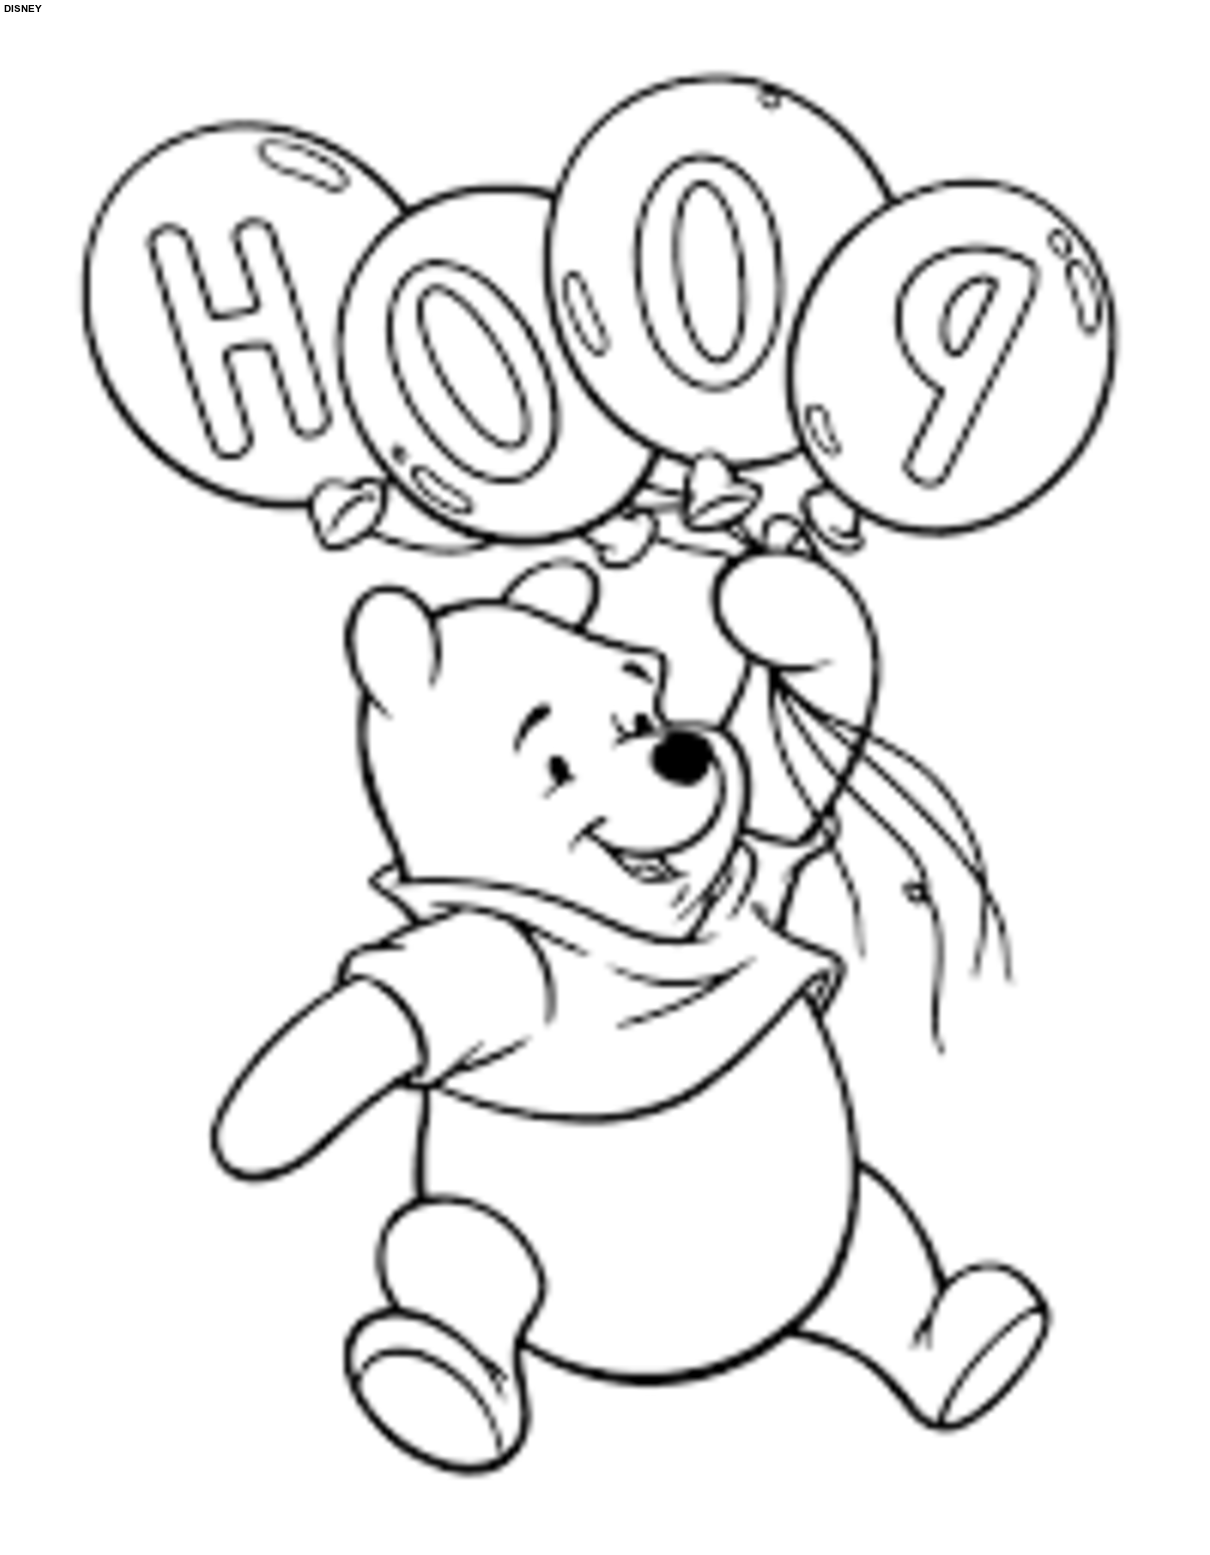 coloring pages of cartoon characters amper bae cartoon coloring pages cartoon pages characters coloring of